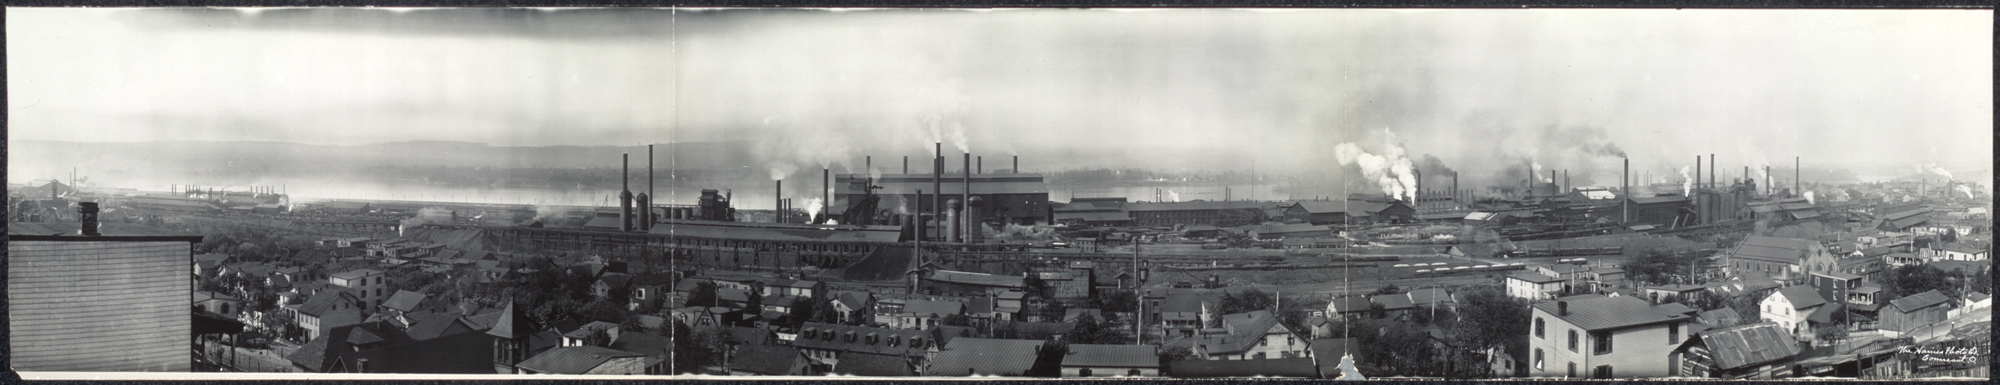 View of Pennsylvania Steel Works, Steelton, Pennsylvania circa 1909,Collection of the Library of Congress. Inset image a vintage stock certificate of Pennsylvania Steel Company Circa  1882. Collection of  VintageStocksandBonds.blogspot.com